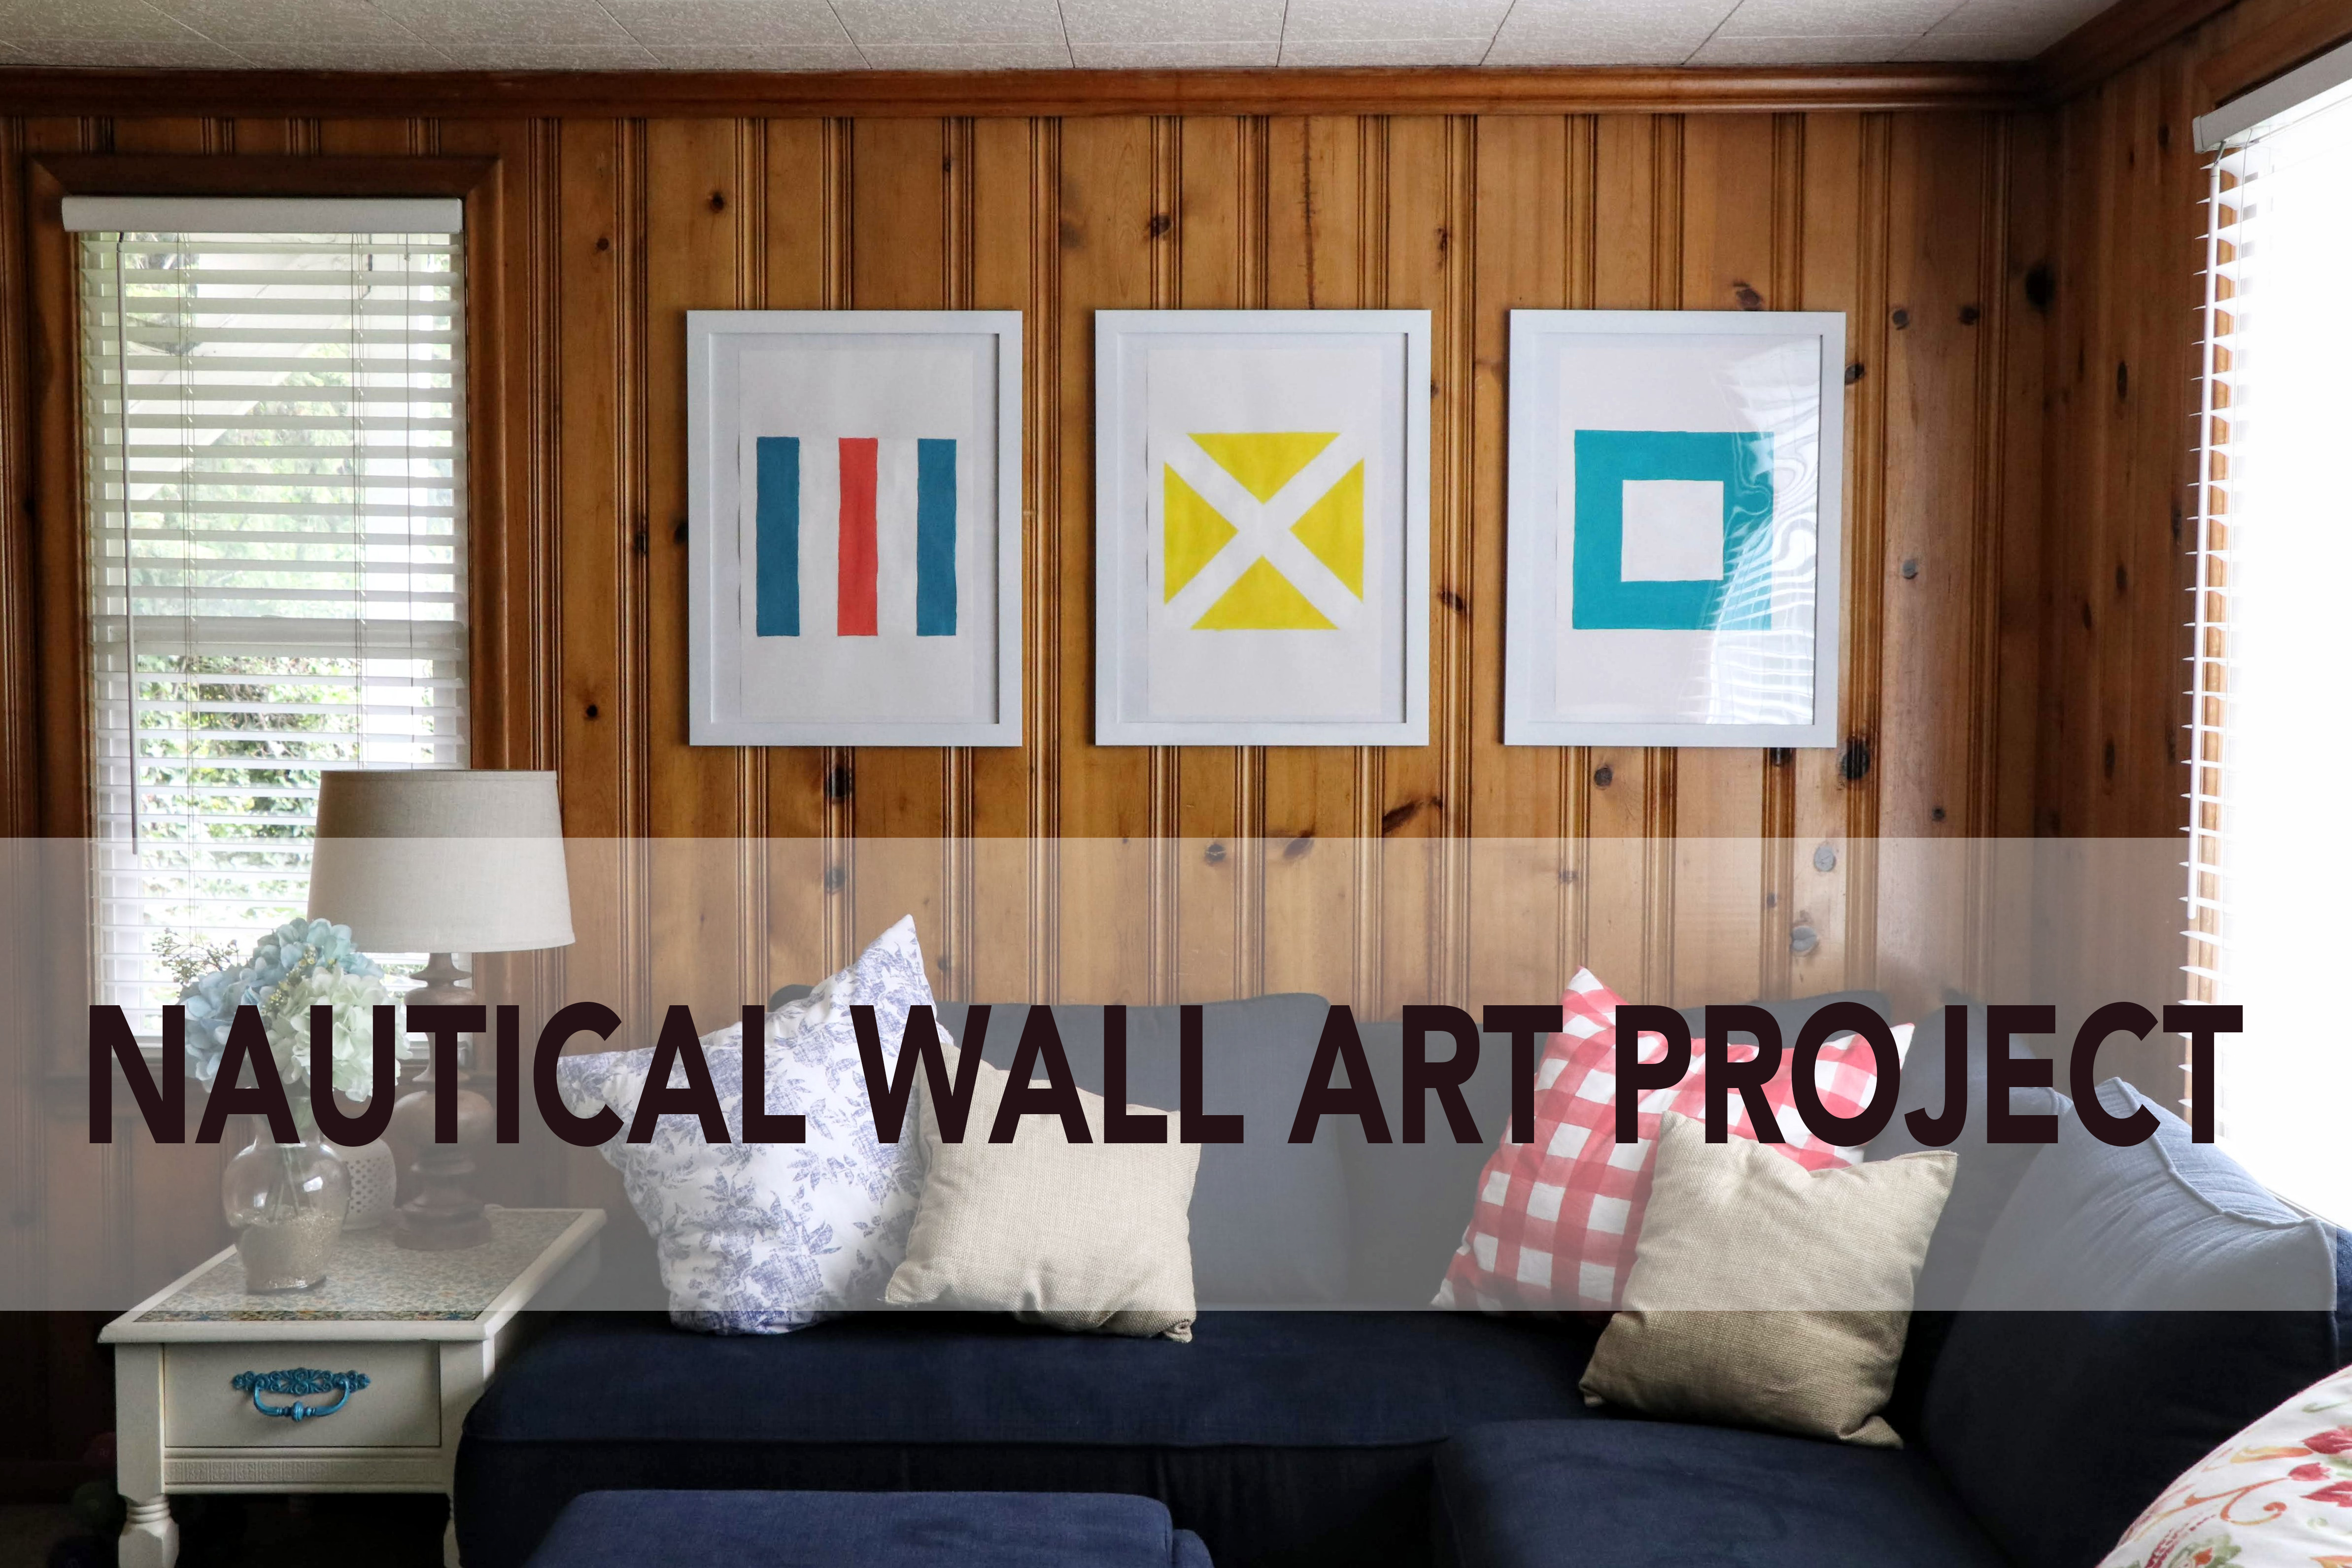 Nautical Flag Wall Art Project. Only takes 2 hours and basic art skills. Complete tutorial on the blog.